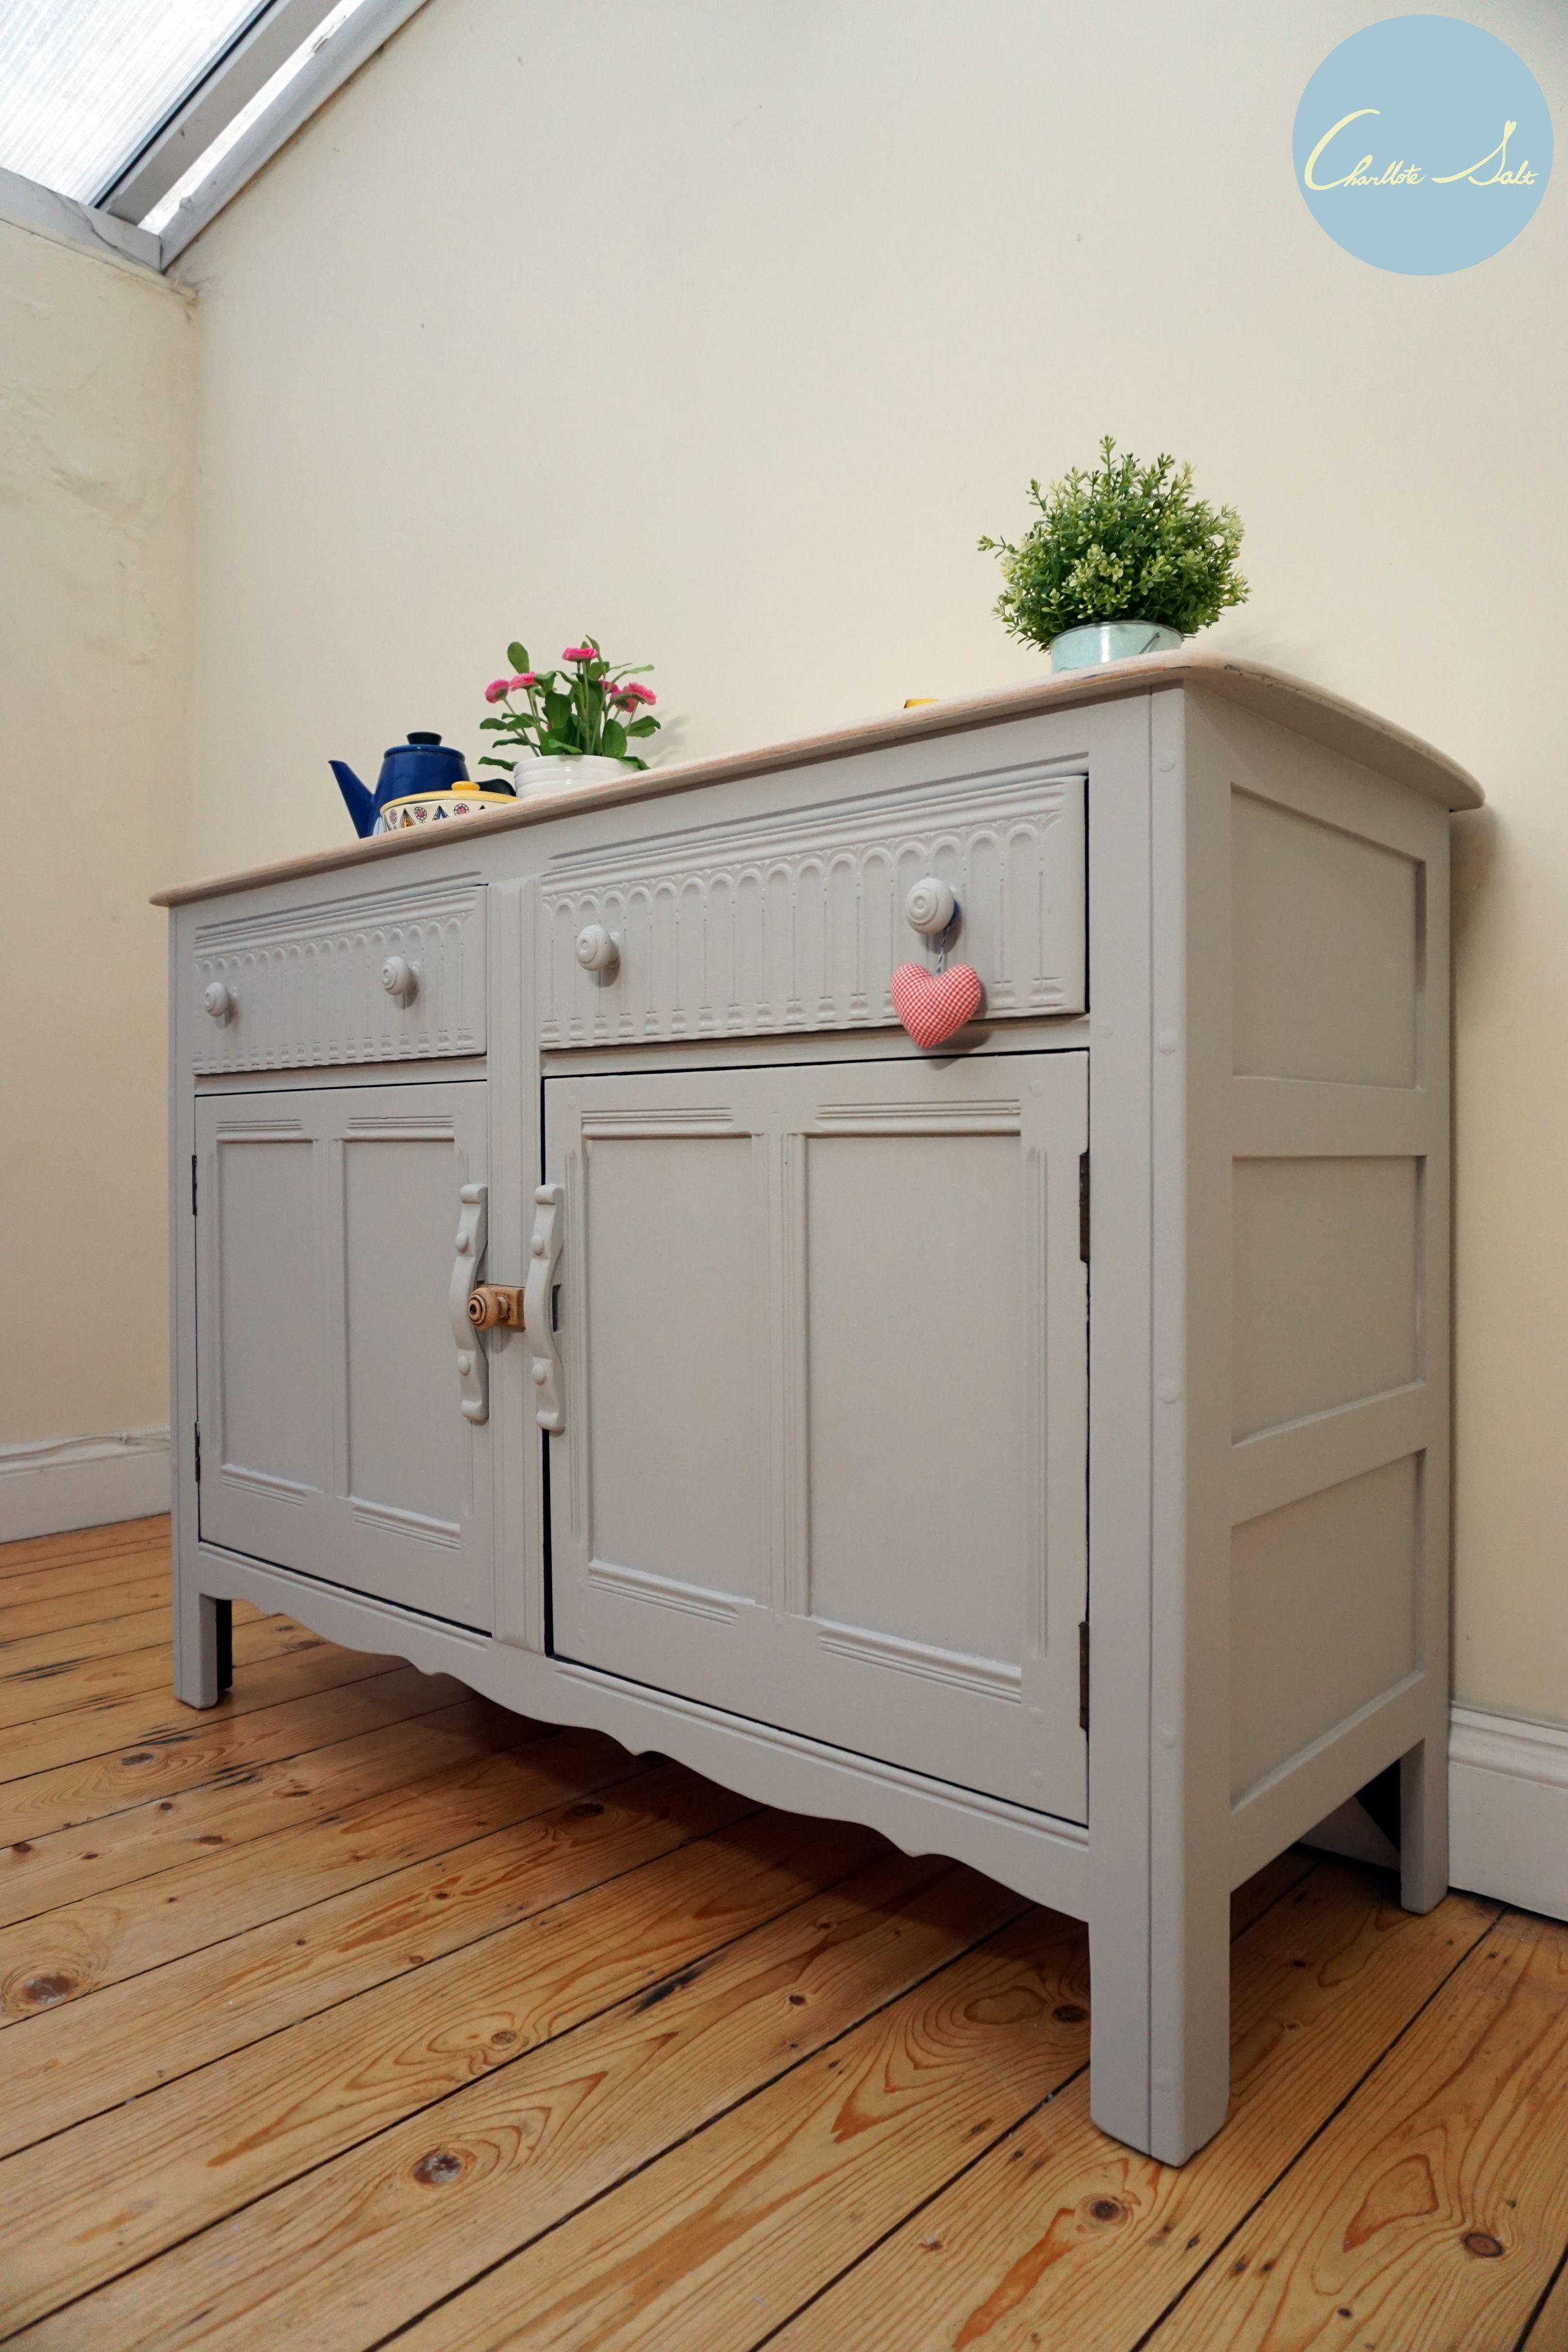 Harga Jual Gradenza Moonstone G Terbaru 2018 Kaos Couple Lengan Panjang Aj81 Ercol Sideboard Is Painted In Laura Ashley Dark Dove Grey And White Washed